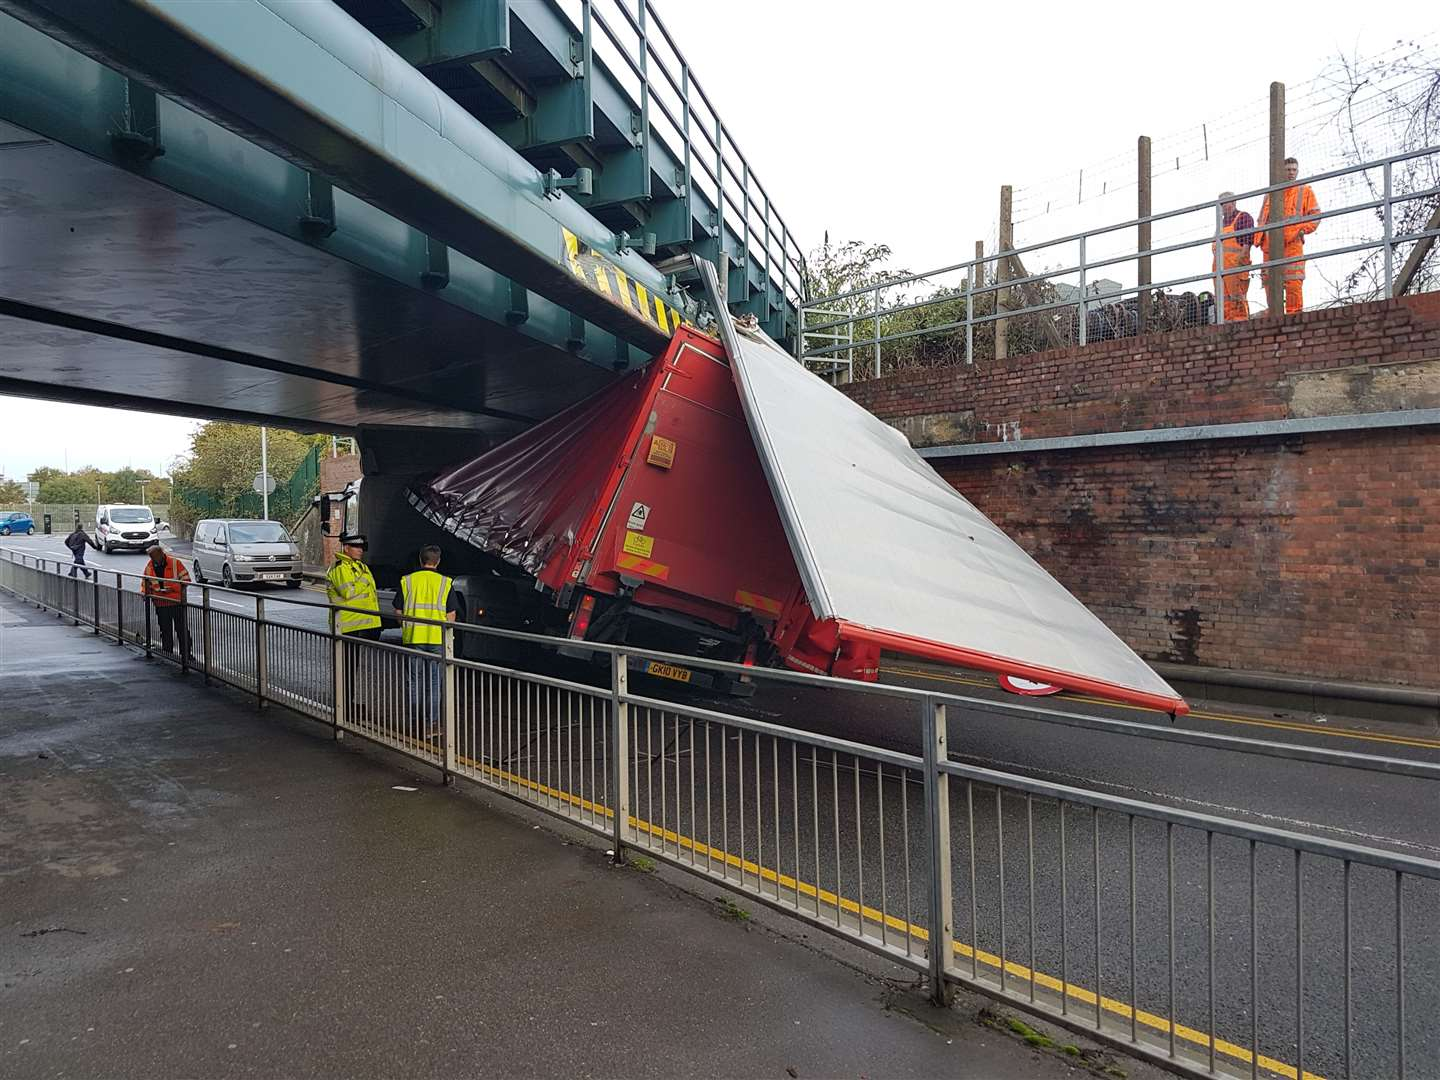 The top of the lorry has collapsed after it hit Newtown Road bridge (18826504)